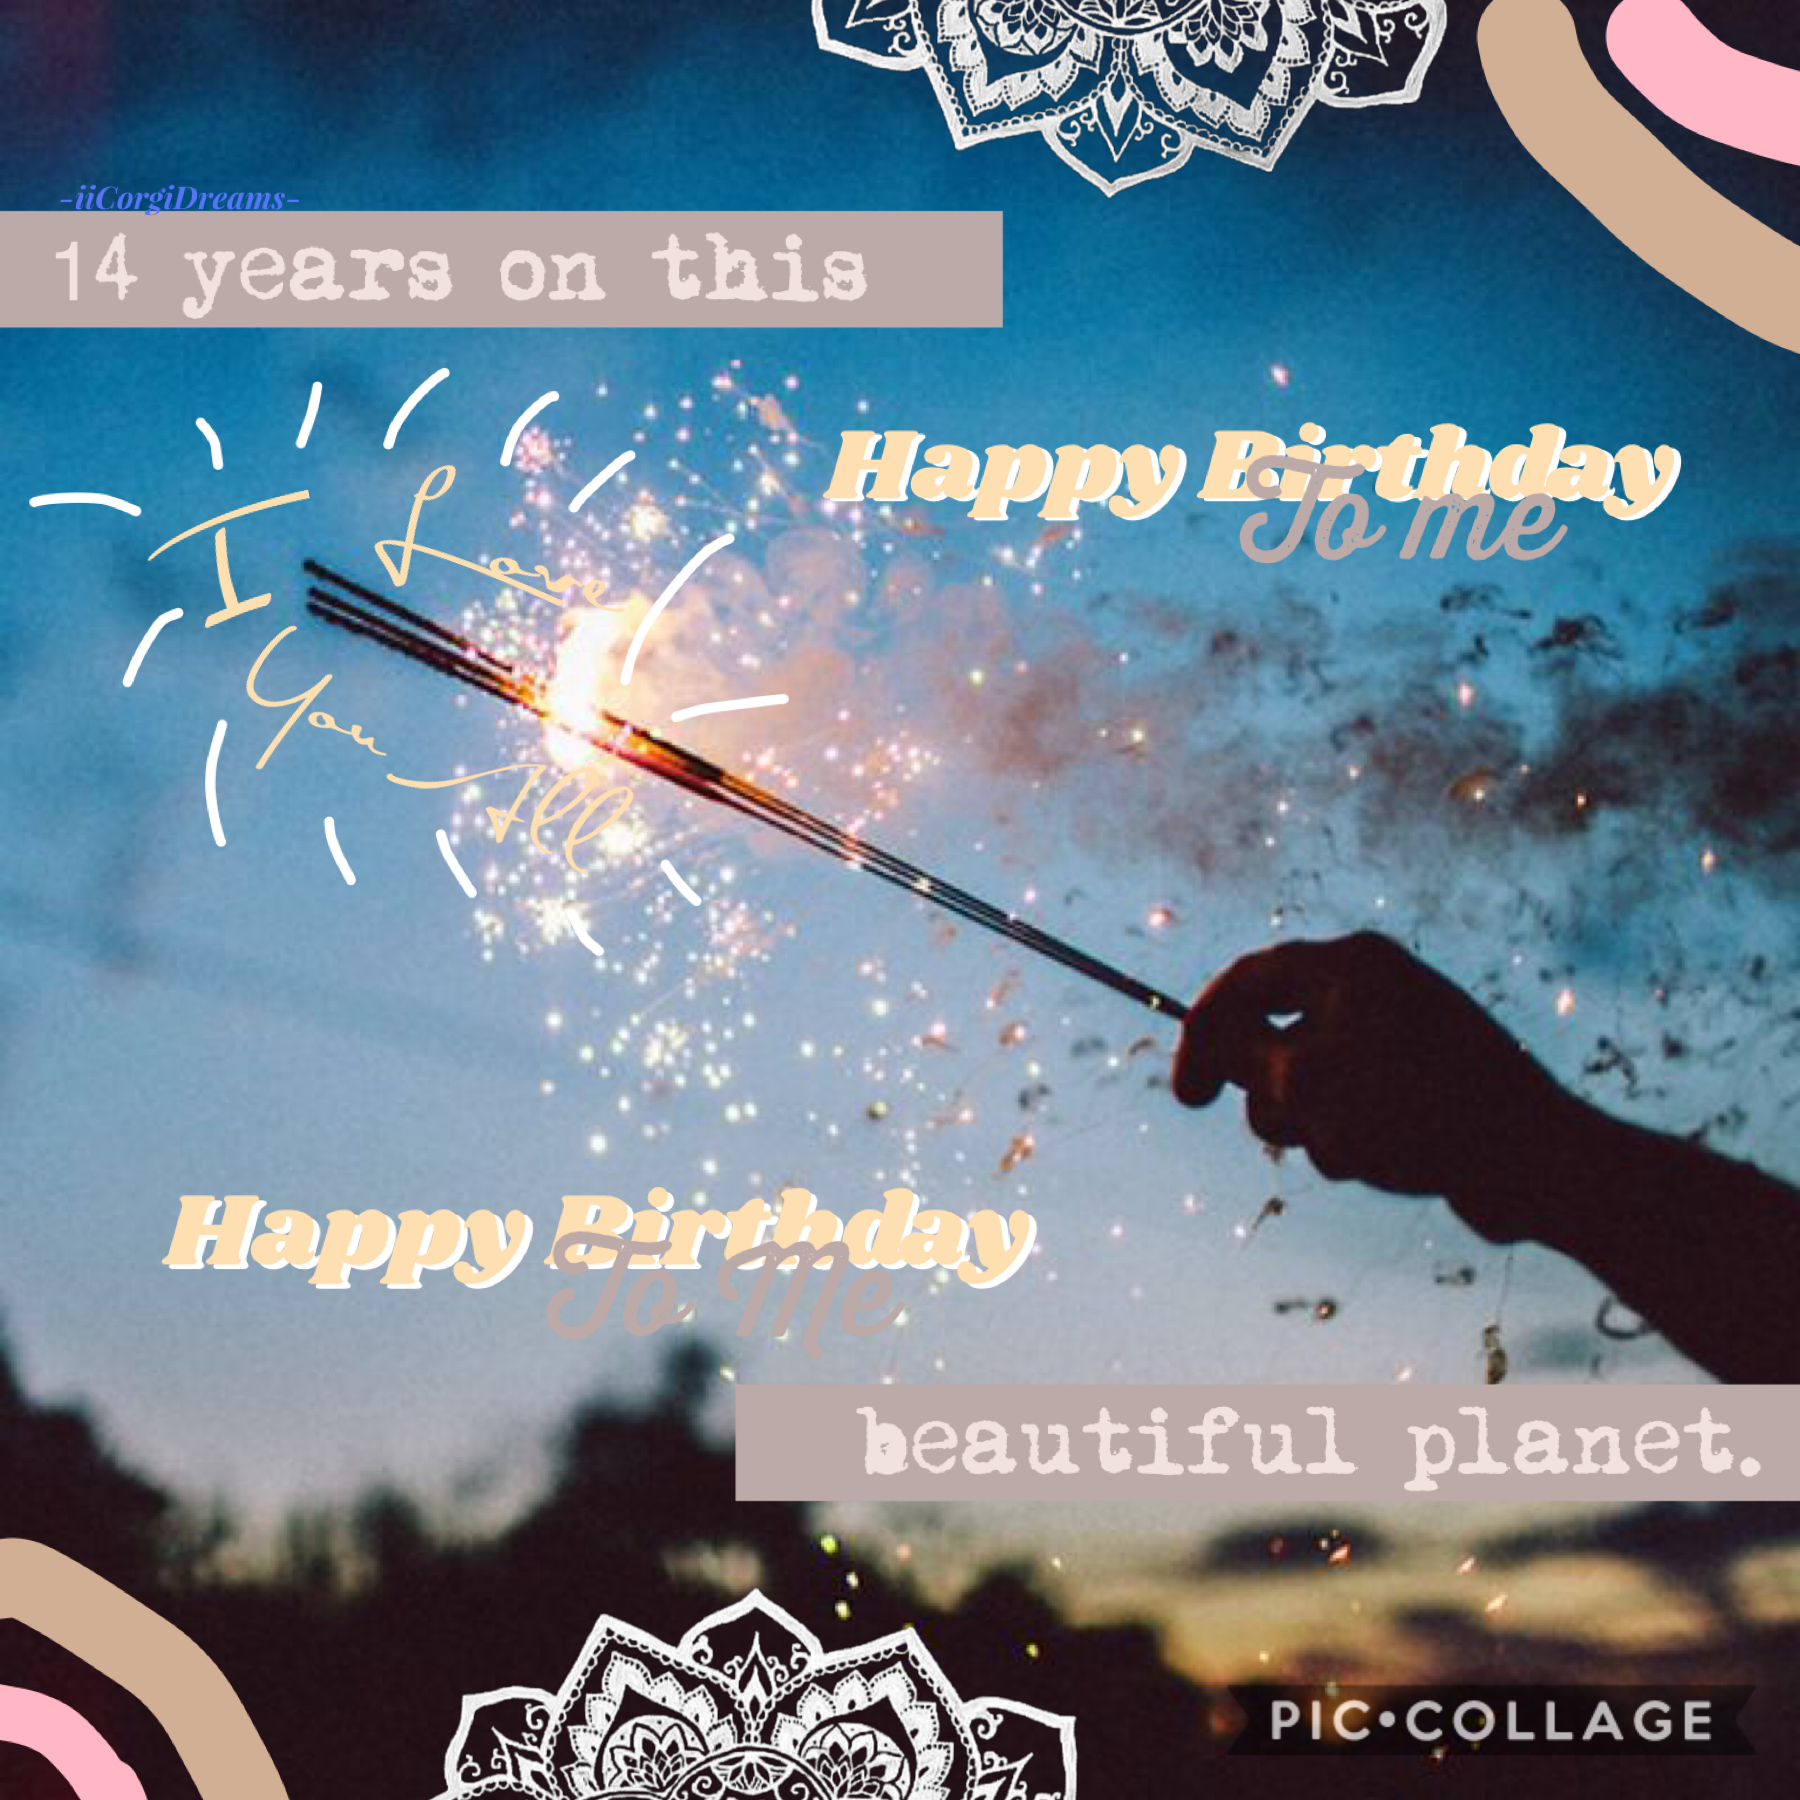 🎉 Tap 🎉 I hope you guys like this, lol, i threw it together.  QOTC: How far away is your birthday?  AOTC: It's today! 🥳 gUeSs WhOs BiRtHdAy iS tOmOrRoW?  expect a collage tomorrow you know who you are 😉